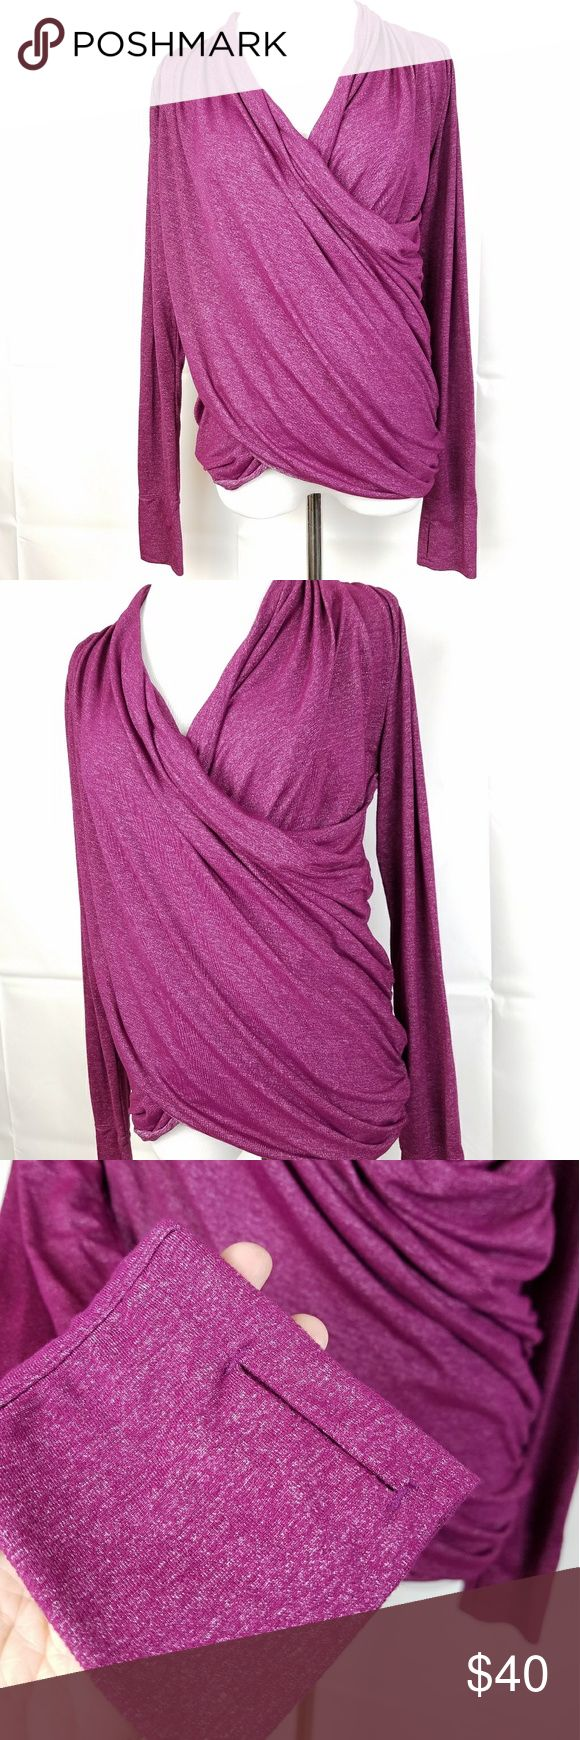 Athleta Long Sleeve Wrap Top Fuschia Womens Small This oh-so-soft top is the perfect mix between a wrap and a long sleeve athletic top. The material is stretchy and soft, and the fit is loose through the torso with a long back and thumbholes! The color is a heathered Fuschia and this top is in excellent condition, no flaws. Looks and feels like new. Athleta Tops Tees - Long Sleeve